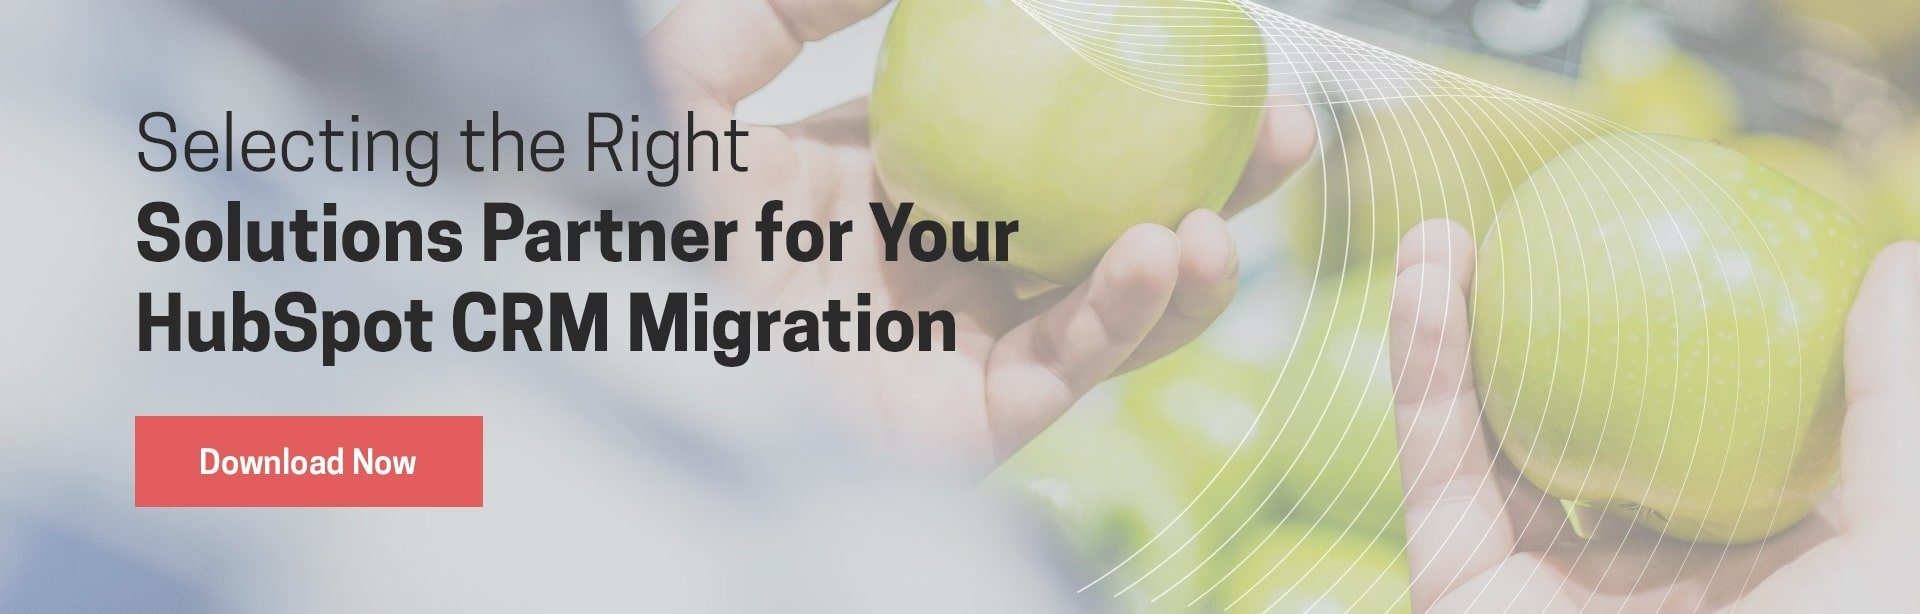 Selecting the right solution partner for your HubSpot CRM migration